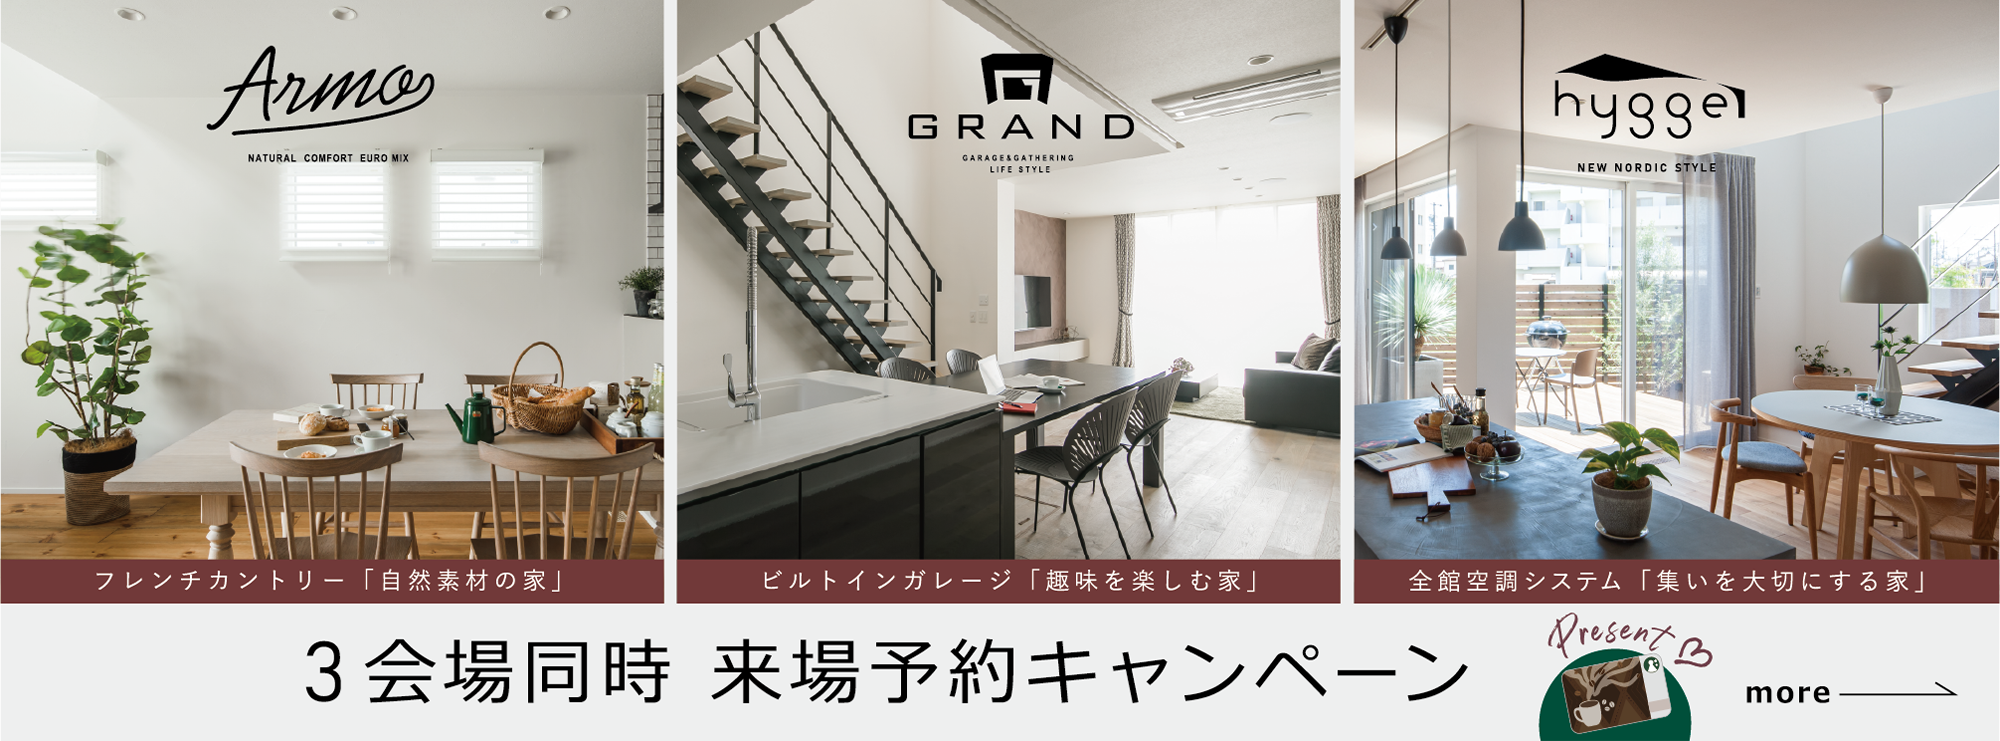 GRAND OPEN concept model house hygge